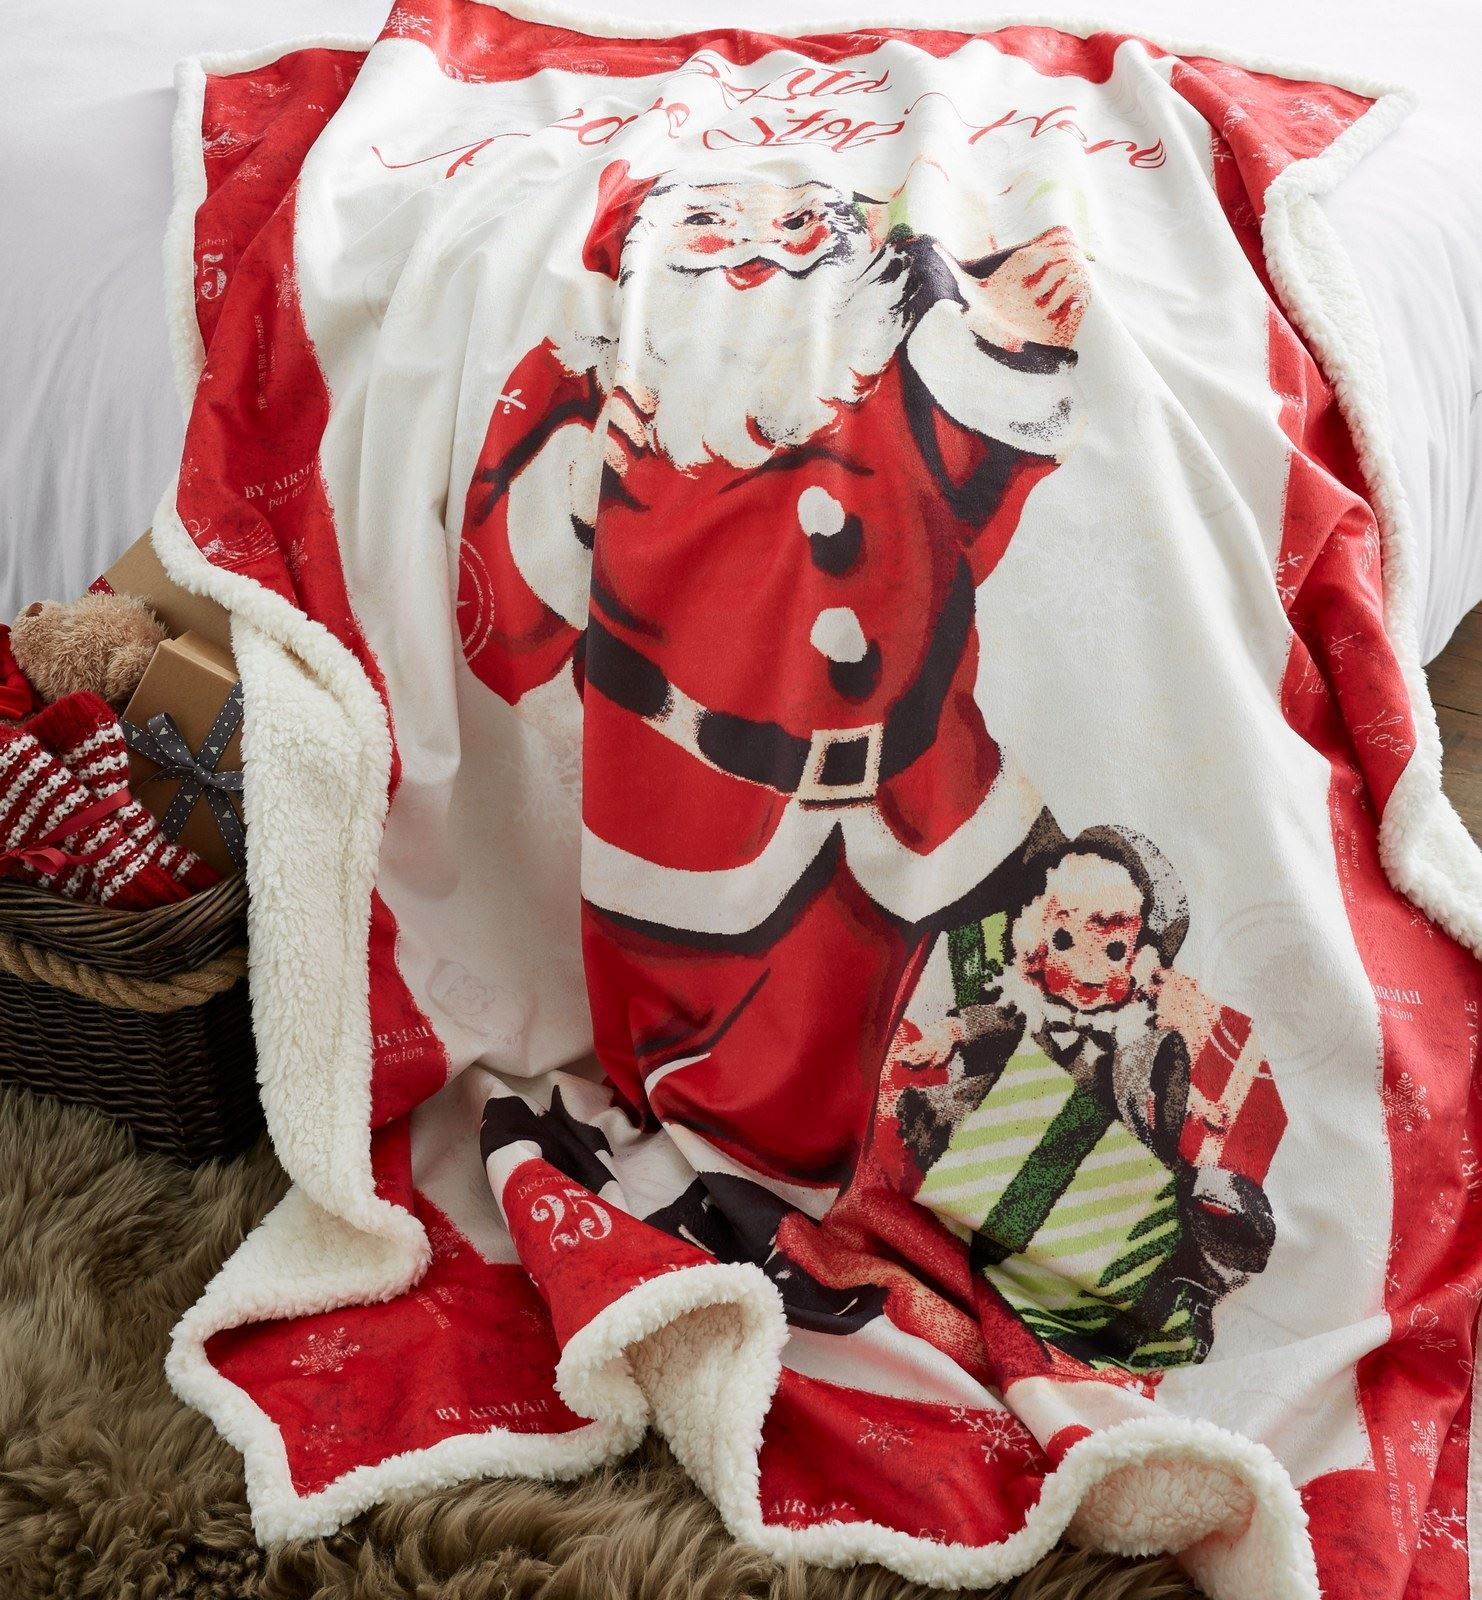 Wide range of Christmas Bedding available to buy today at Dunelm, the UK's largest homewares and soft furnishings store. Order now for a fast home delivery or reserve in store.